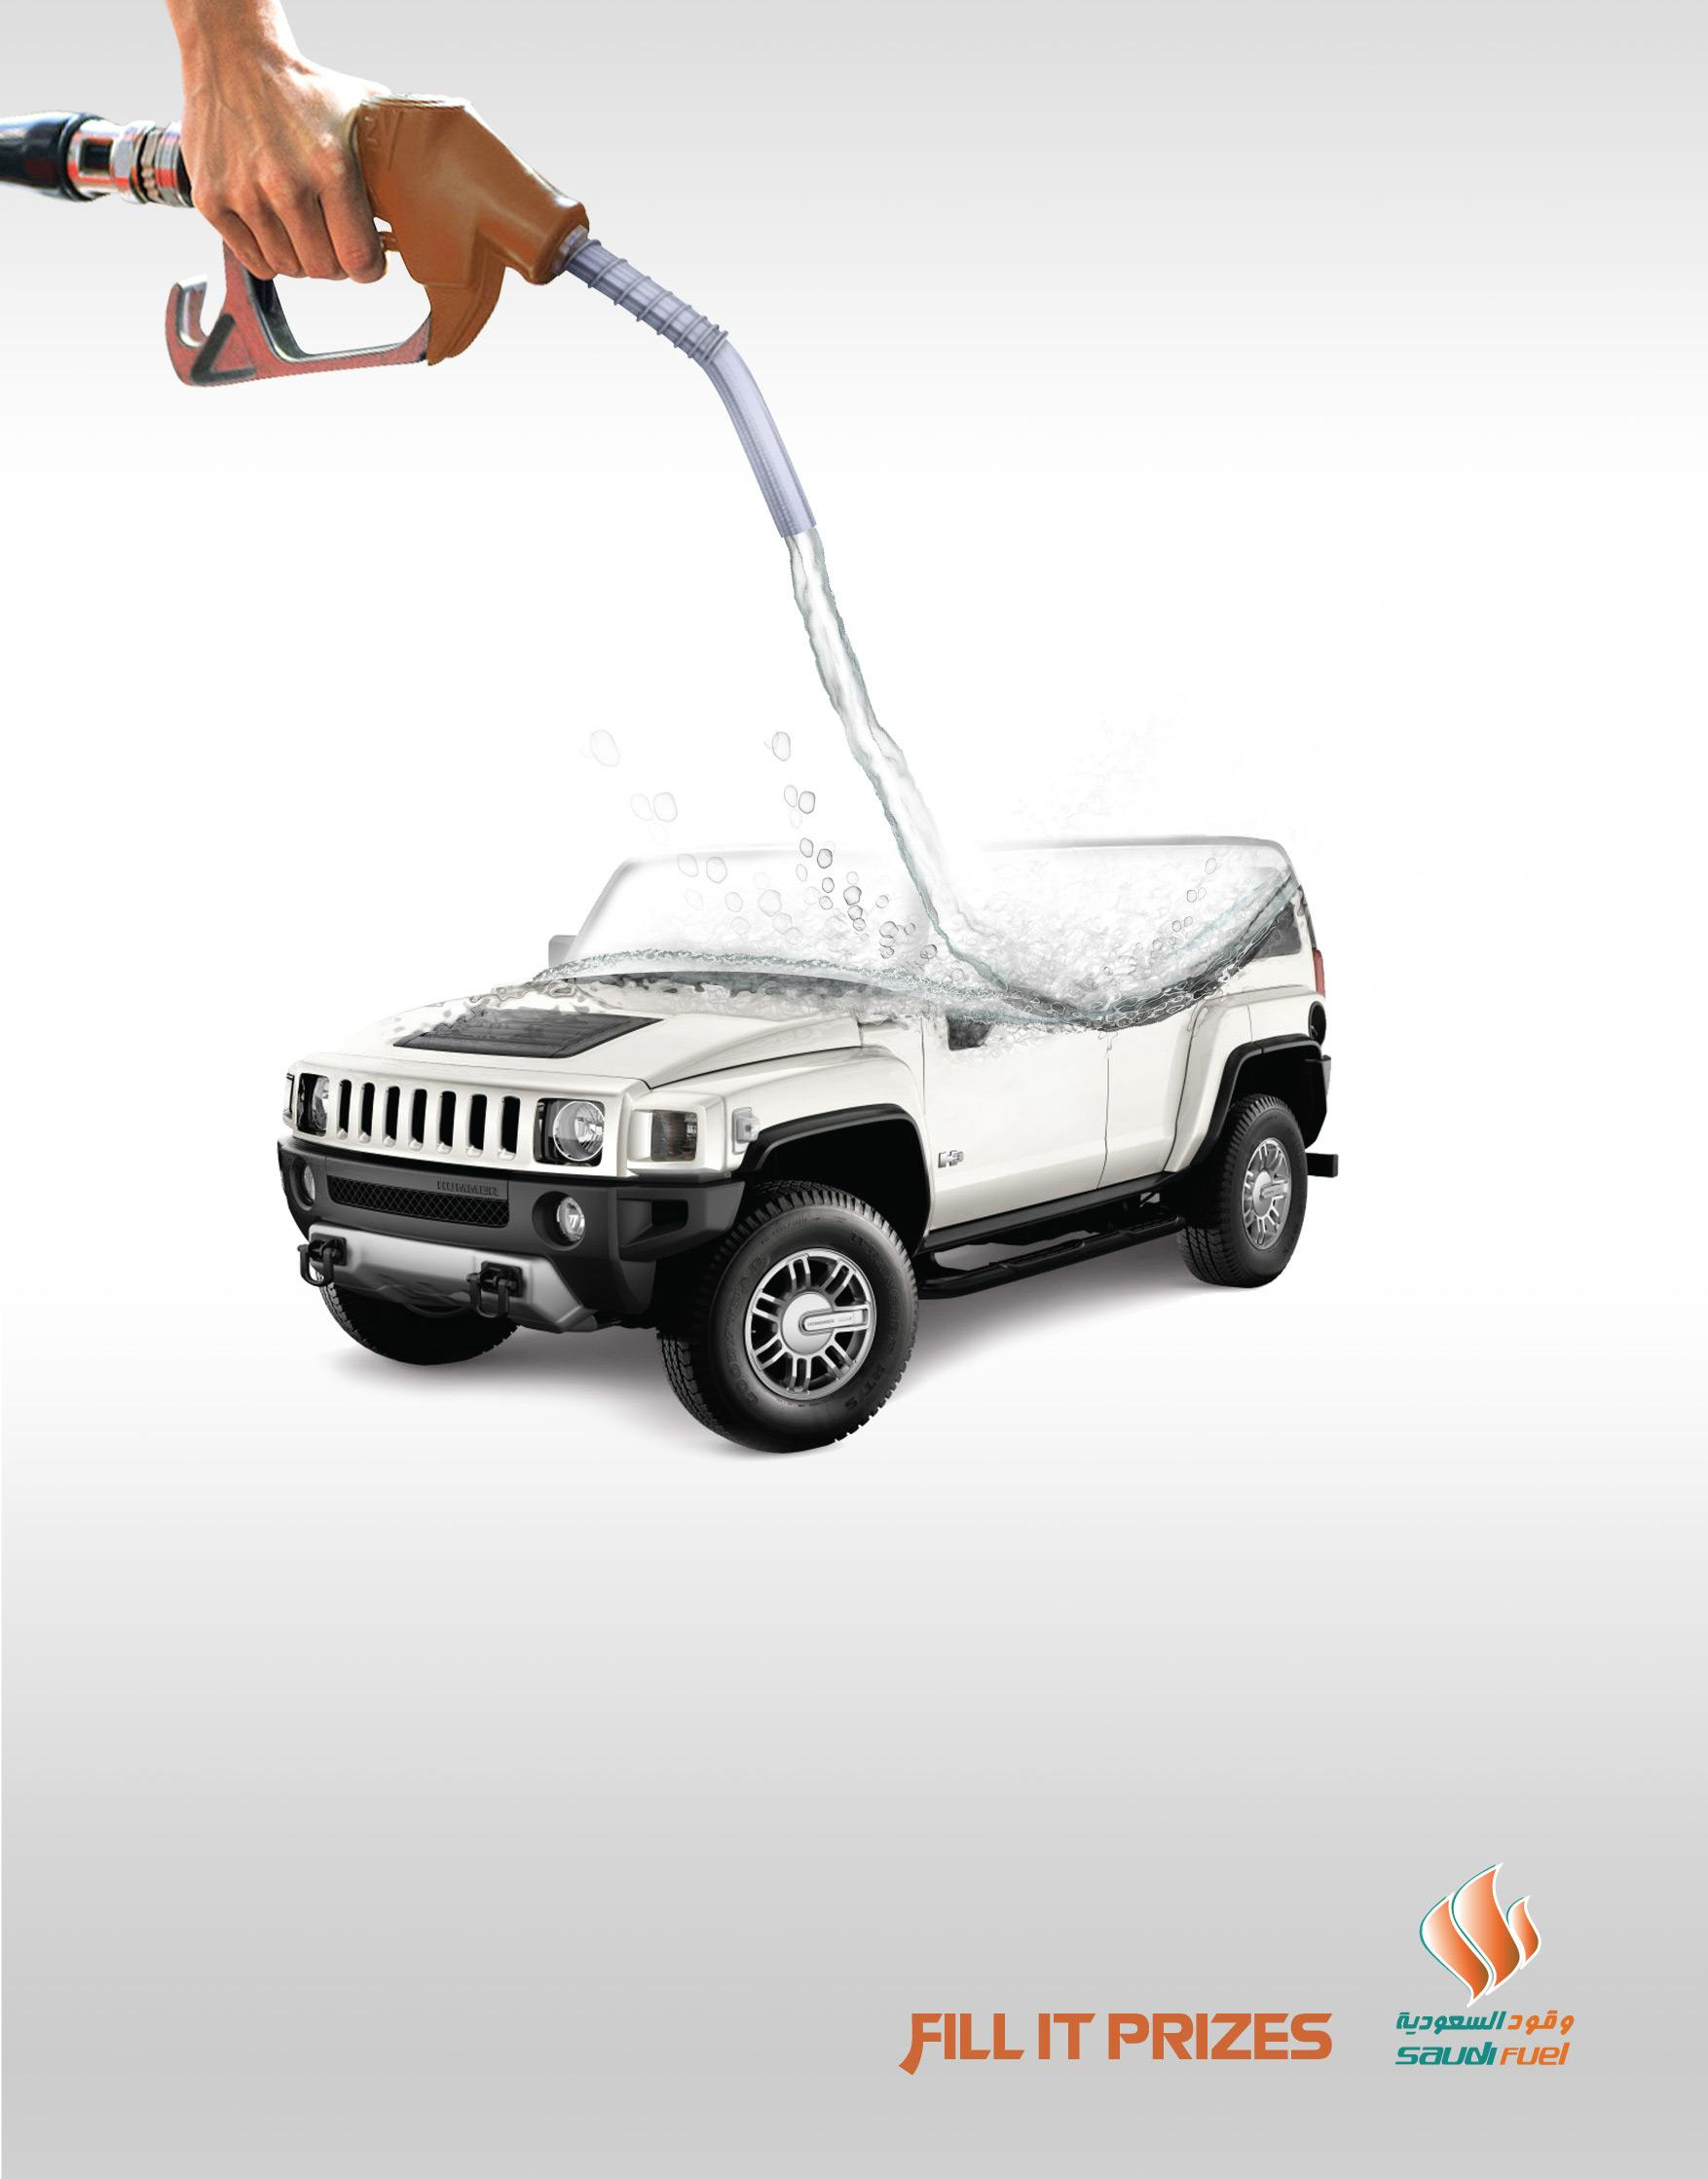 Saudi Fuel Print Ad -  Fill it Prizes, Car